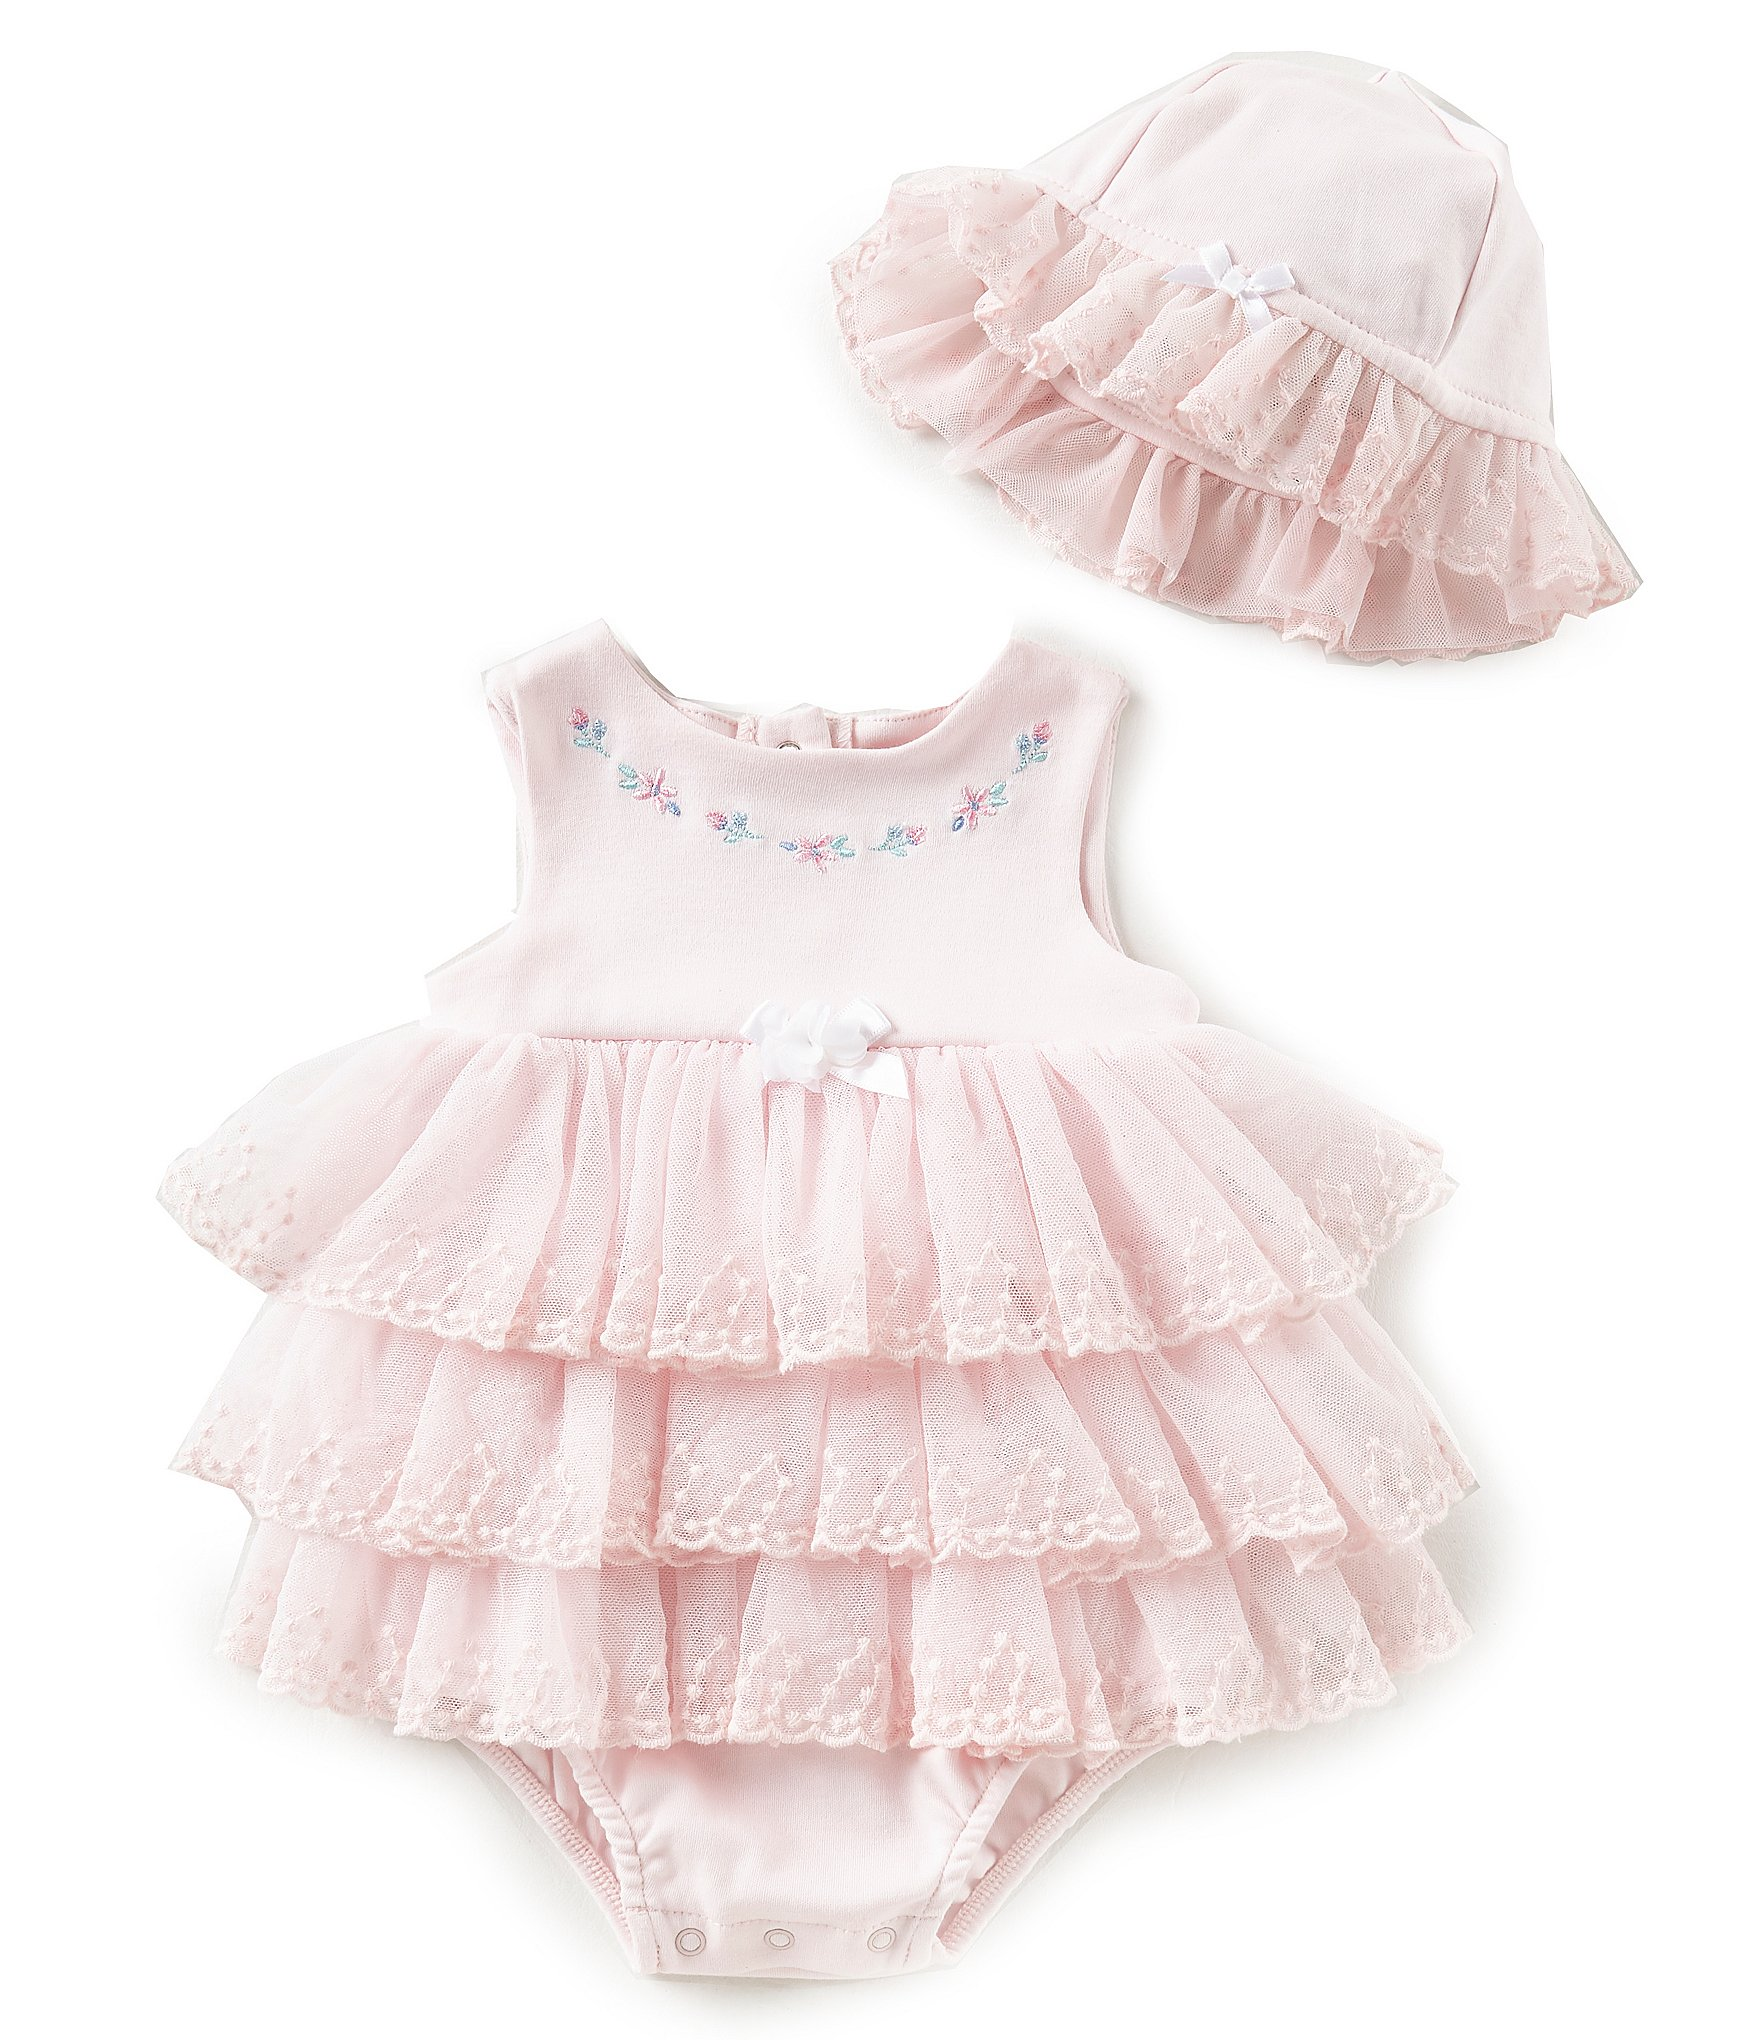 baby clearance clothes Kids & Baby Clothing & Accessories